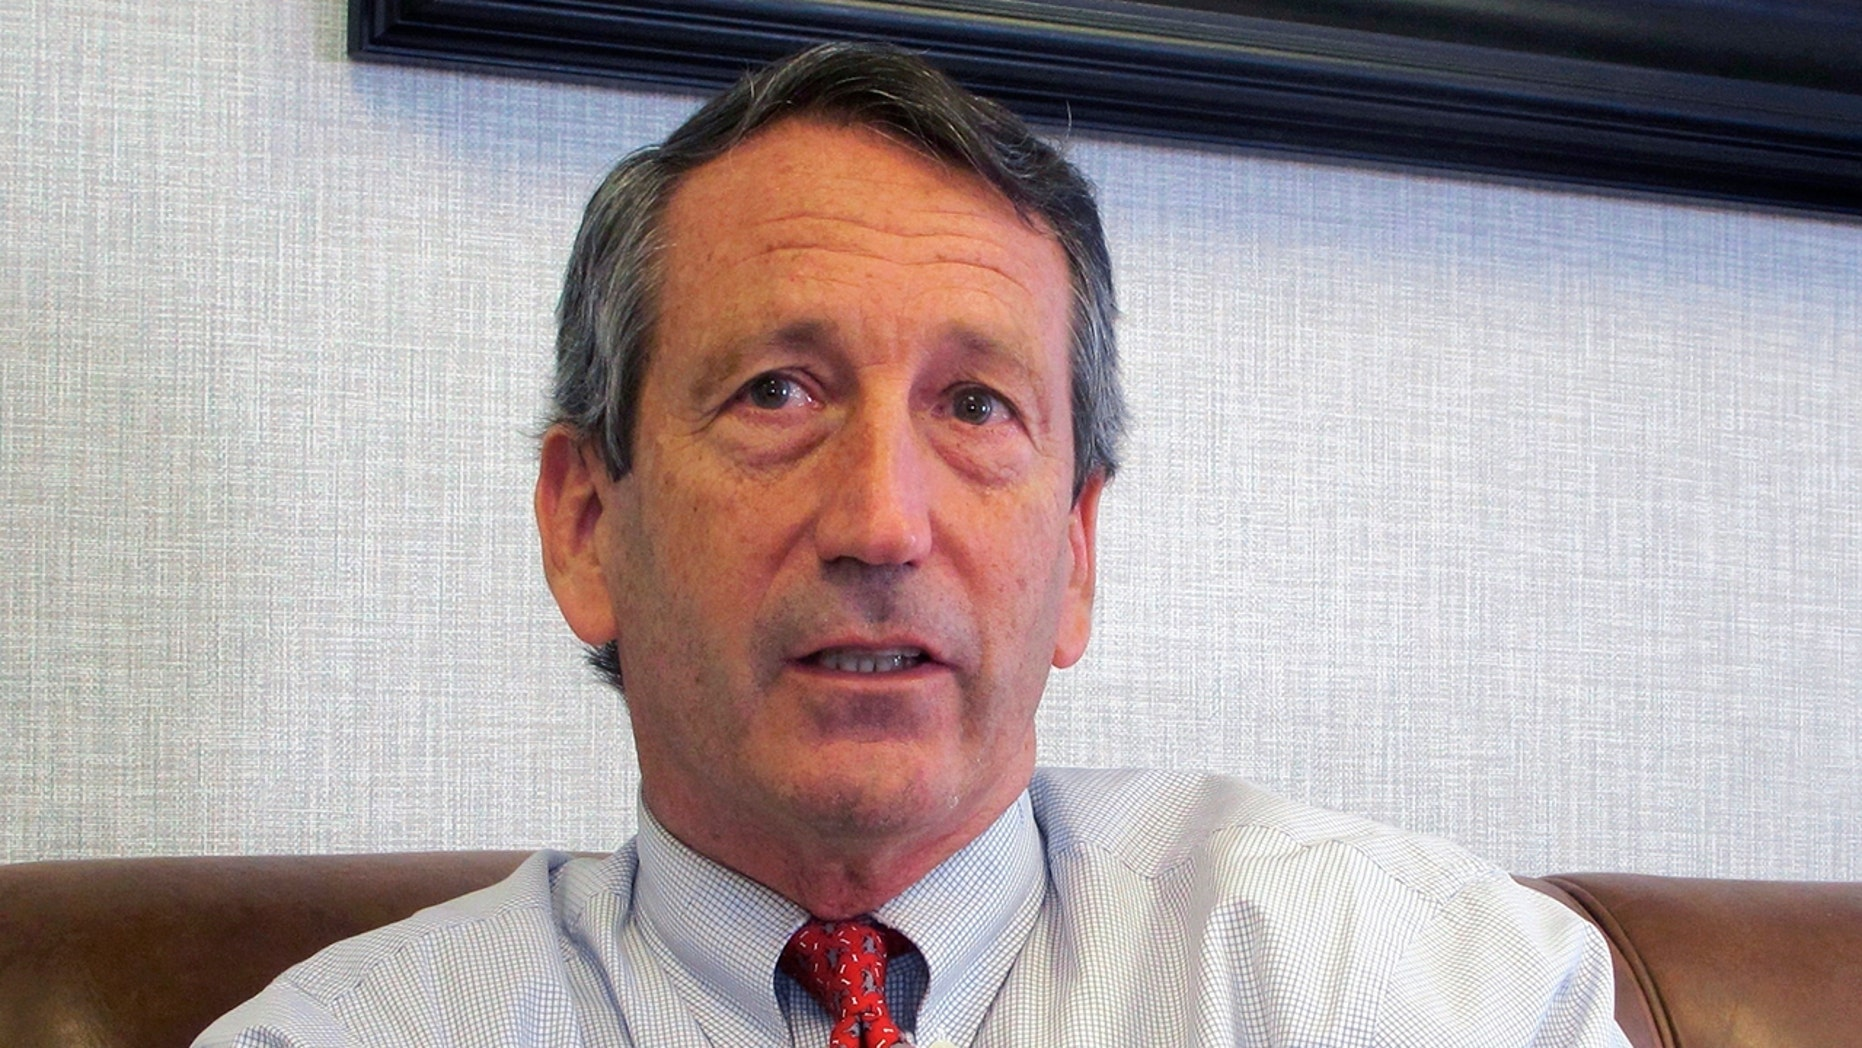 Mark Sanford, seen in this Dec. 18, 2013, file photo, is pondering a 2020 primary challenge to President Trump. (AP Photo/Bruce Smith)